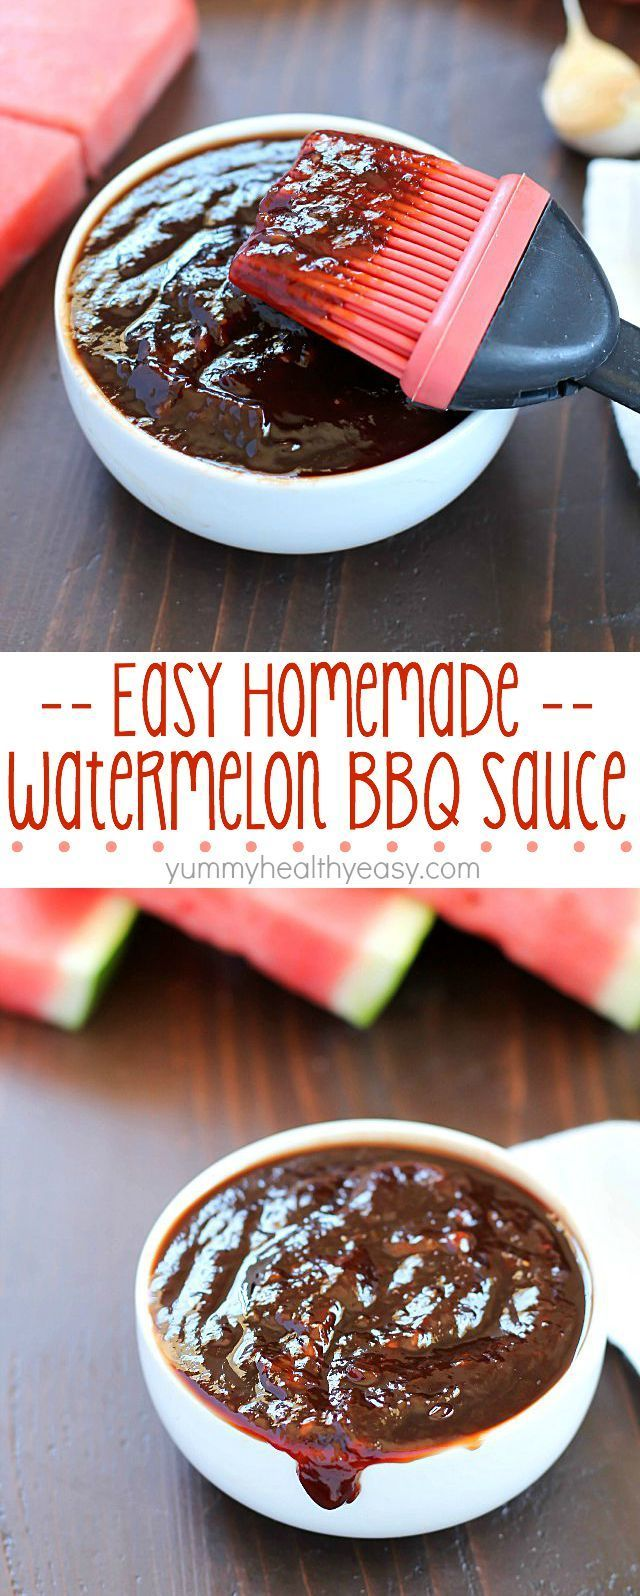 Watermelon Homemade BBQ Sauce - it's quick, simple to make and tastes deliciously sweet & tangy! Plus a $325 Visa Card giveaway!